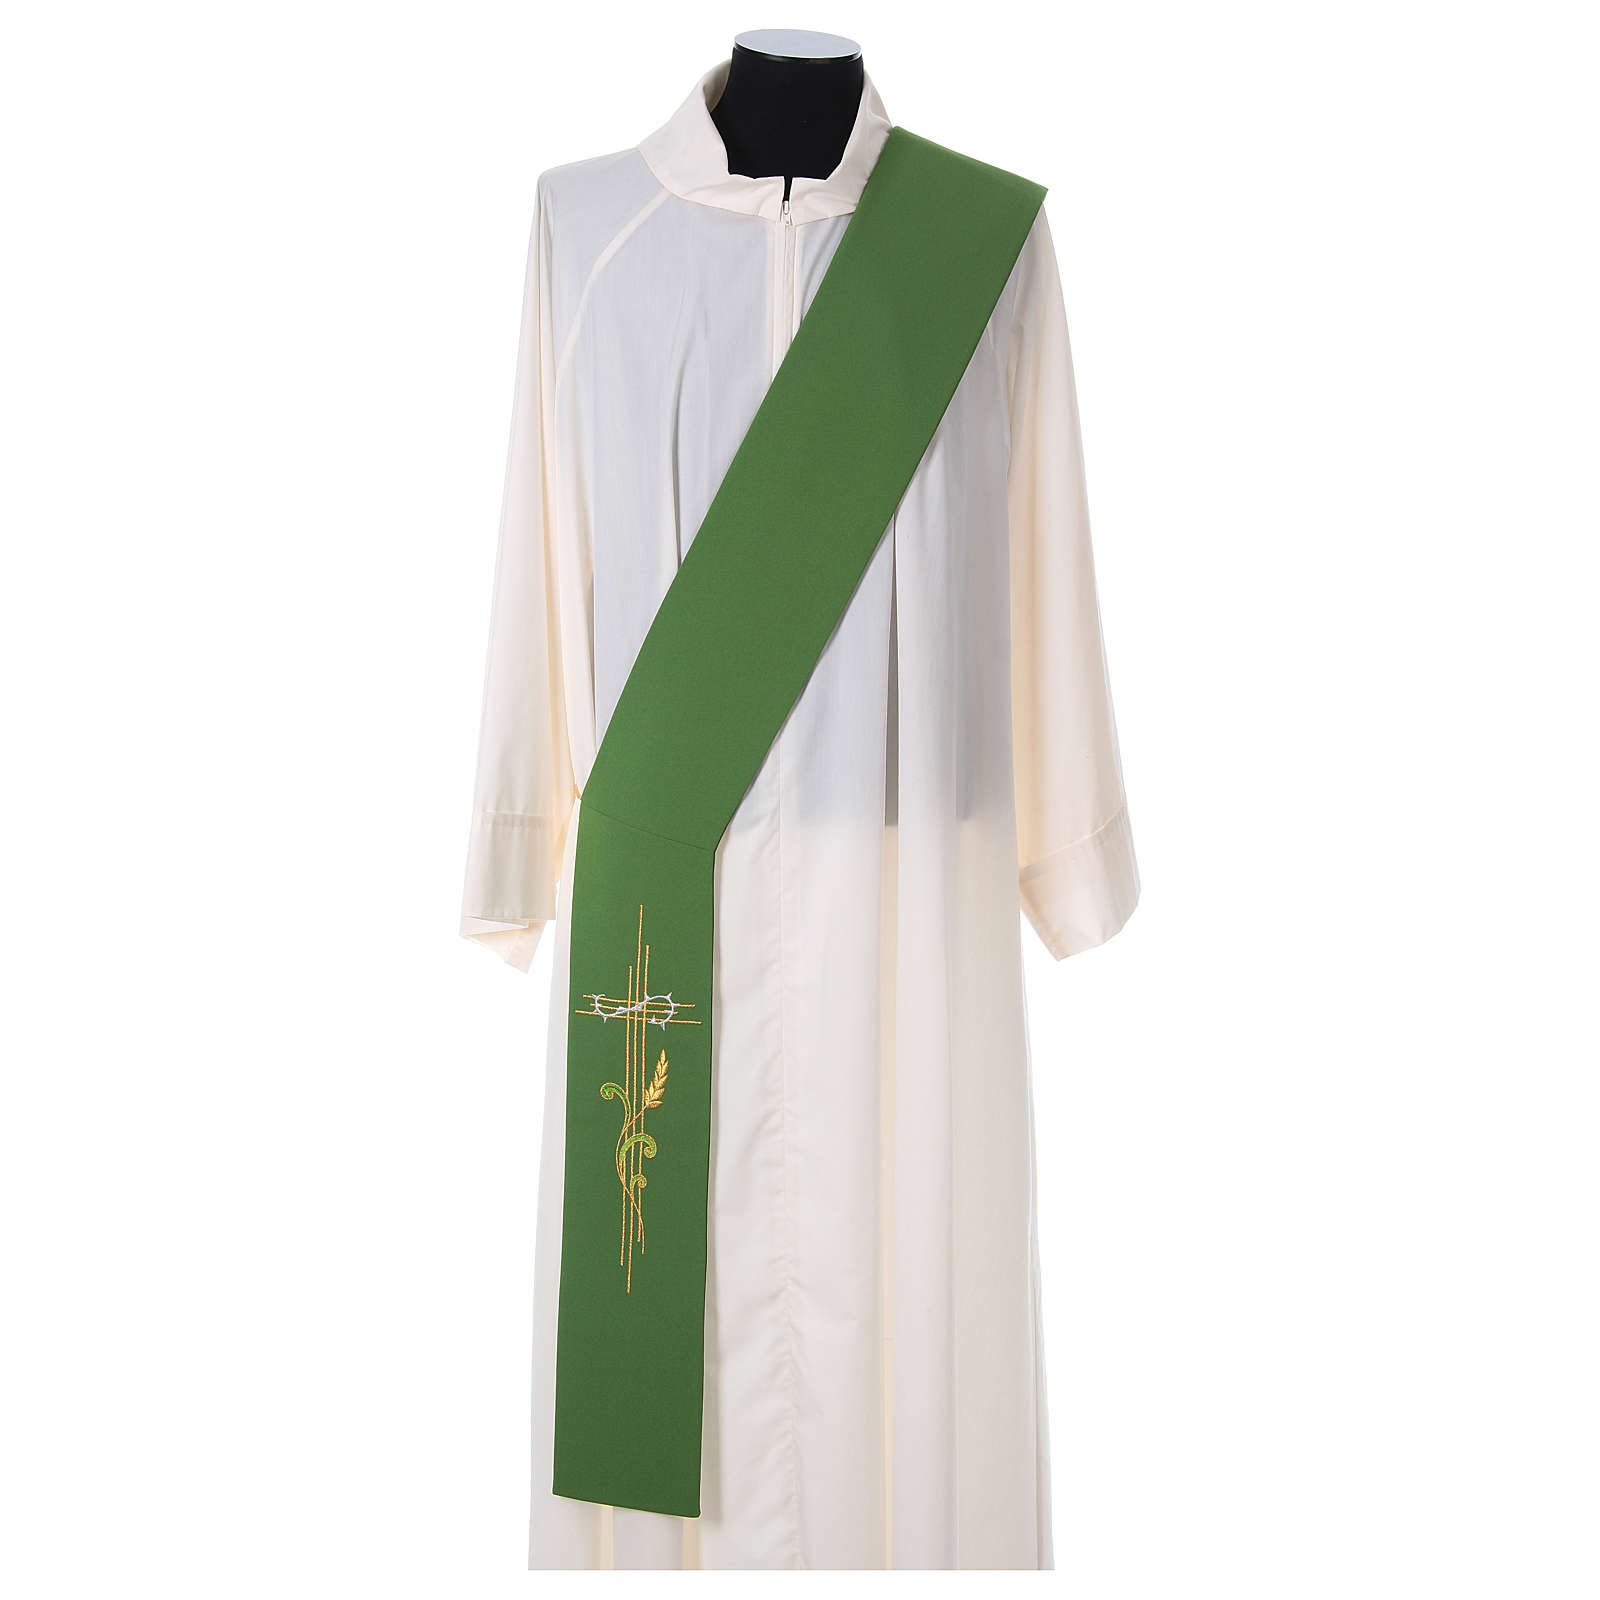 Diaconal stole in polyester with cross and ear of wheat symbols 4